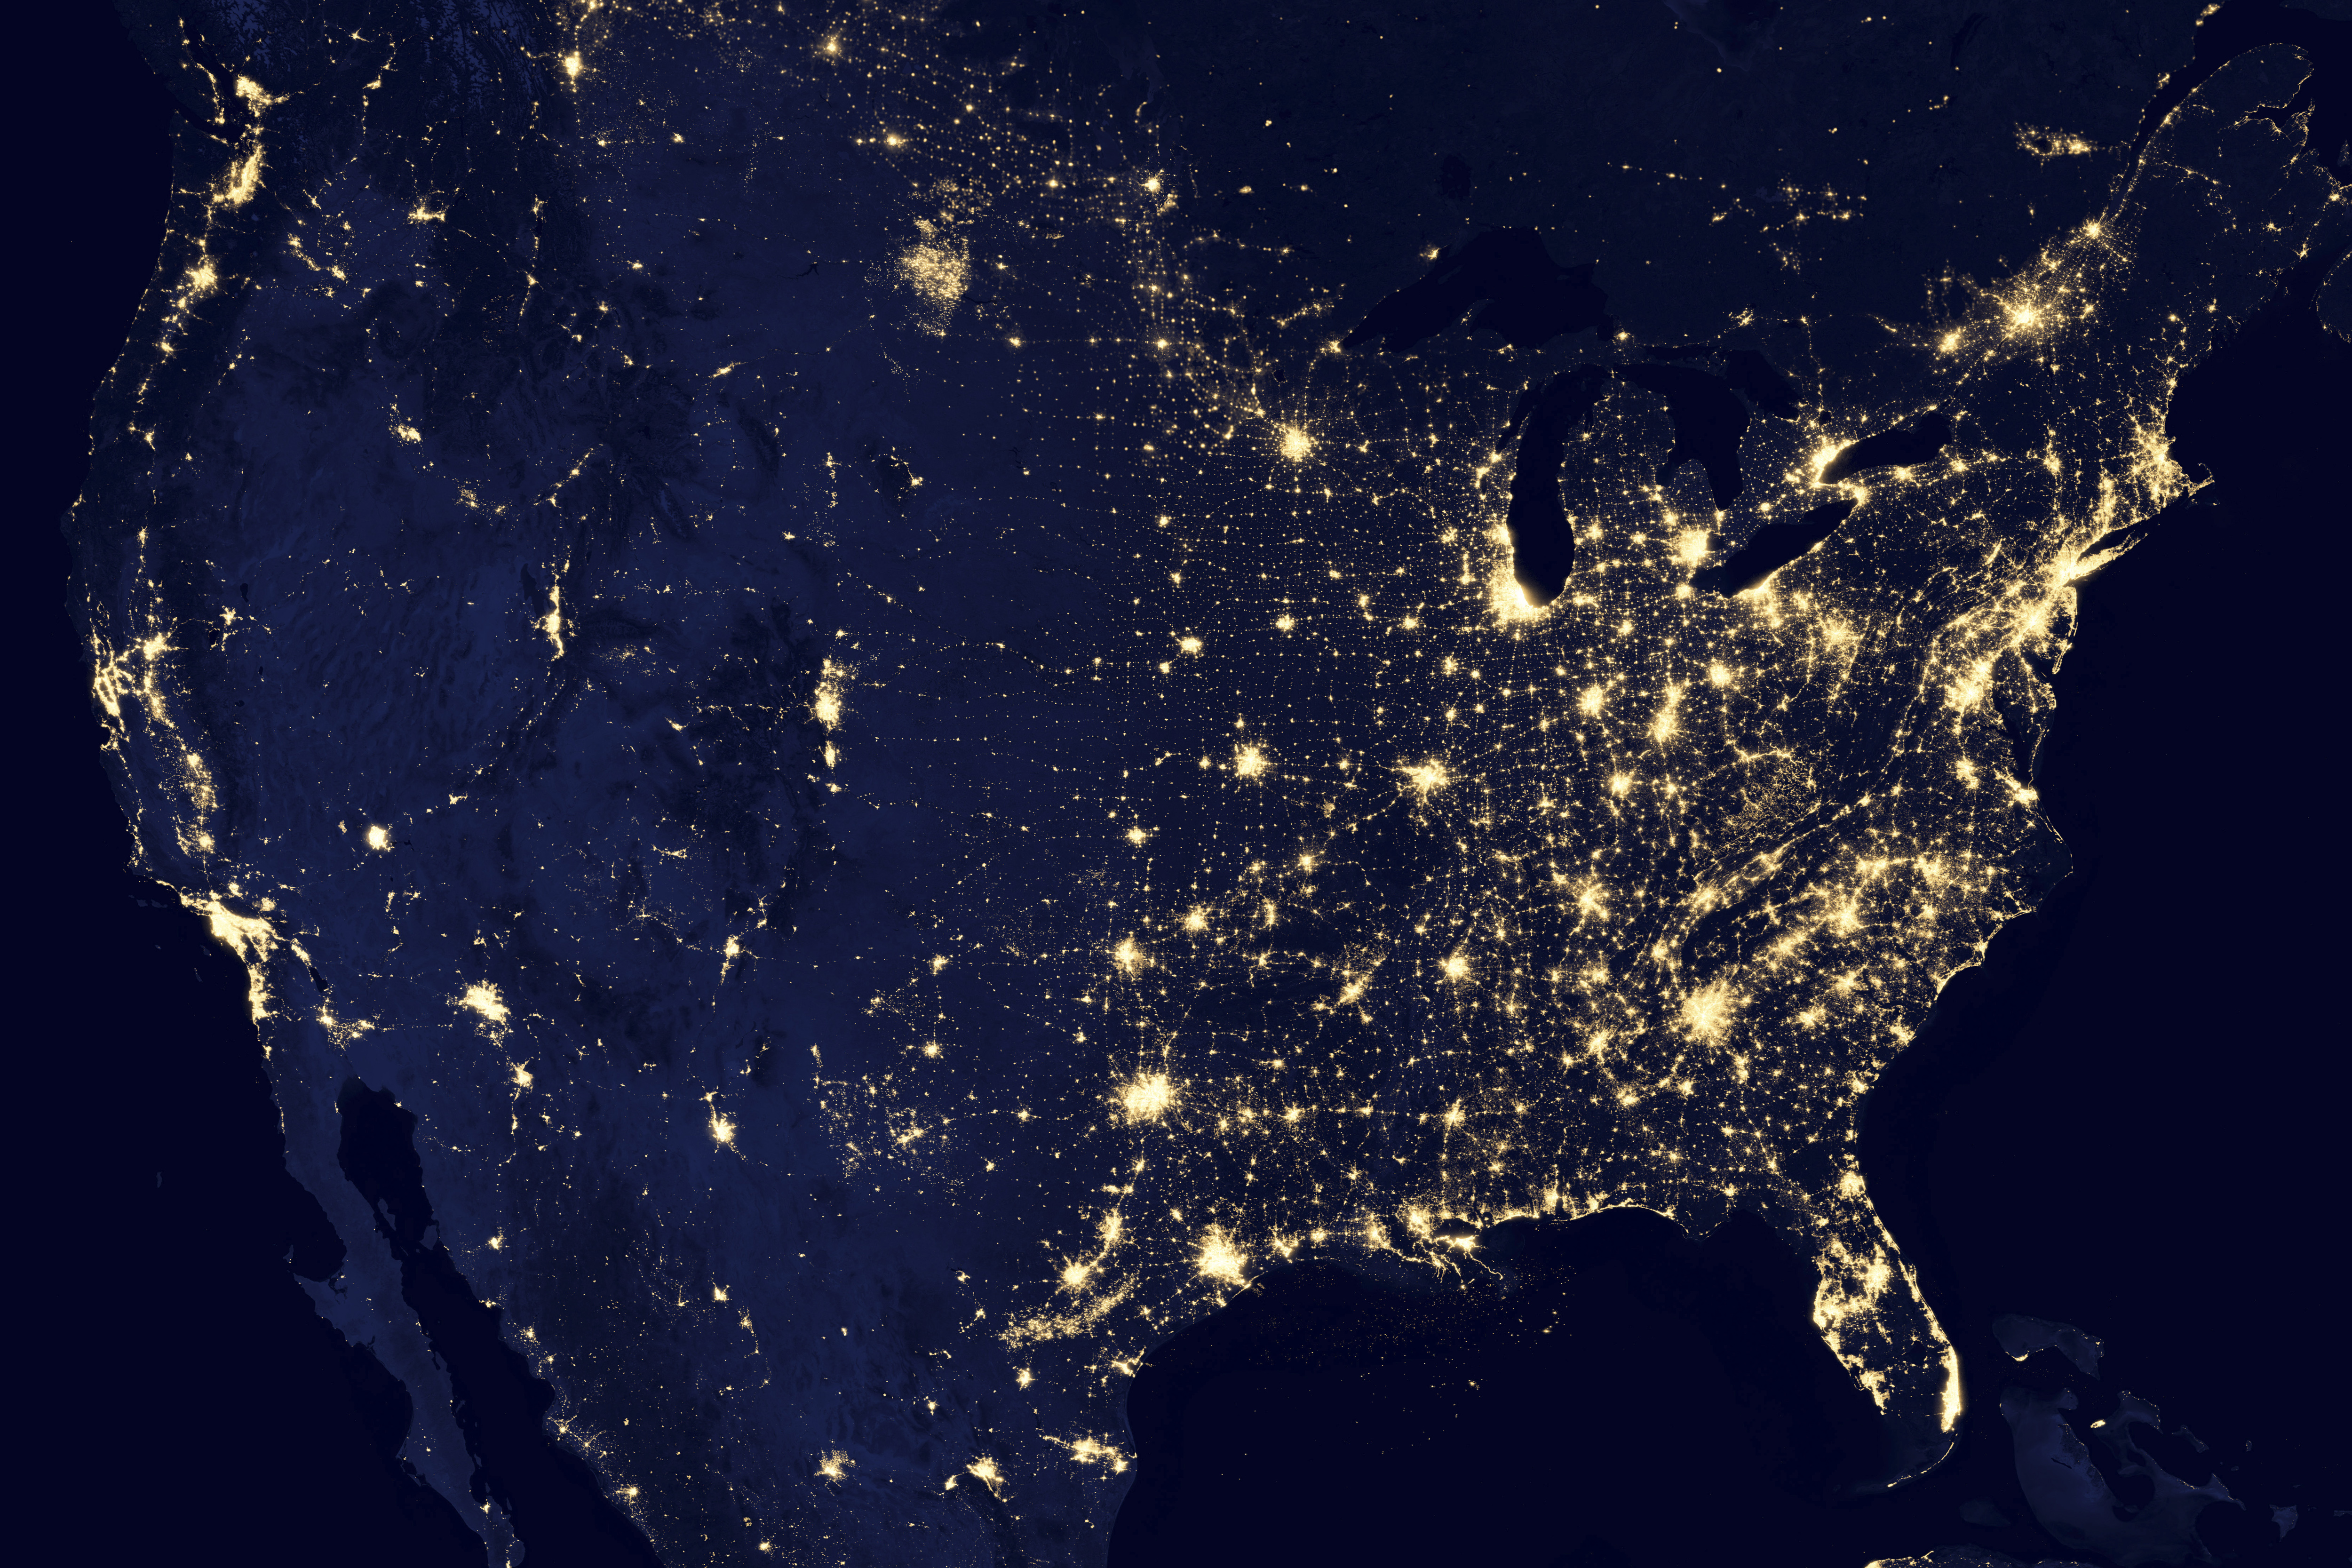 """NASA satellite image shows the United States, Mexico and Canada at night in this composite assembled from data acquired by the Suomi NPP satellite in April and October 2012. The image was made possible by the new satellite's """"day-night band"""" of the Visible Infrared Imaging Radiometer Suite (VIIRS), which detects light in a range of wavelengths from green to near-infrared and uses filtering techniques to observe dim signals such as city lights, gas flares, auroras, wildfires, and reflected moonlight. REUTERS/NASA/Robert Simmon/NOAA/Department of Defense/Handout (UNITED STATES - Tags: ENVIRONMENT SCIENCE TECHNOLOGY TPX IMAGES OF THE DAY) FOR EDITORIAL USE ONLY. NOT FOR SALE FOR MARKETING OR ADVERTISING CAMPAIGNS. THIS IMAGE HAS BEEN SUPPLIED BY A THIRD PARTY. IT IS DISTRIBUTED, EXACTLY AS RECEIVED BY REUTERS, AS A SERVICE TO CLIENTS"""